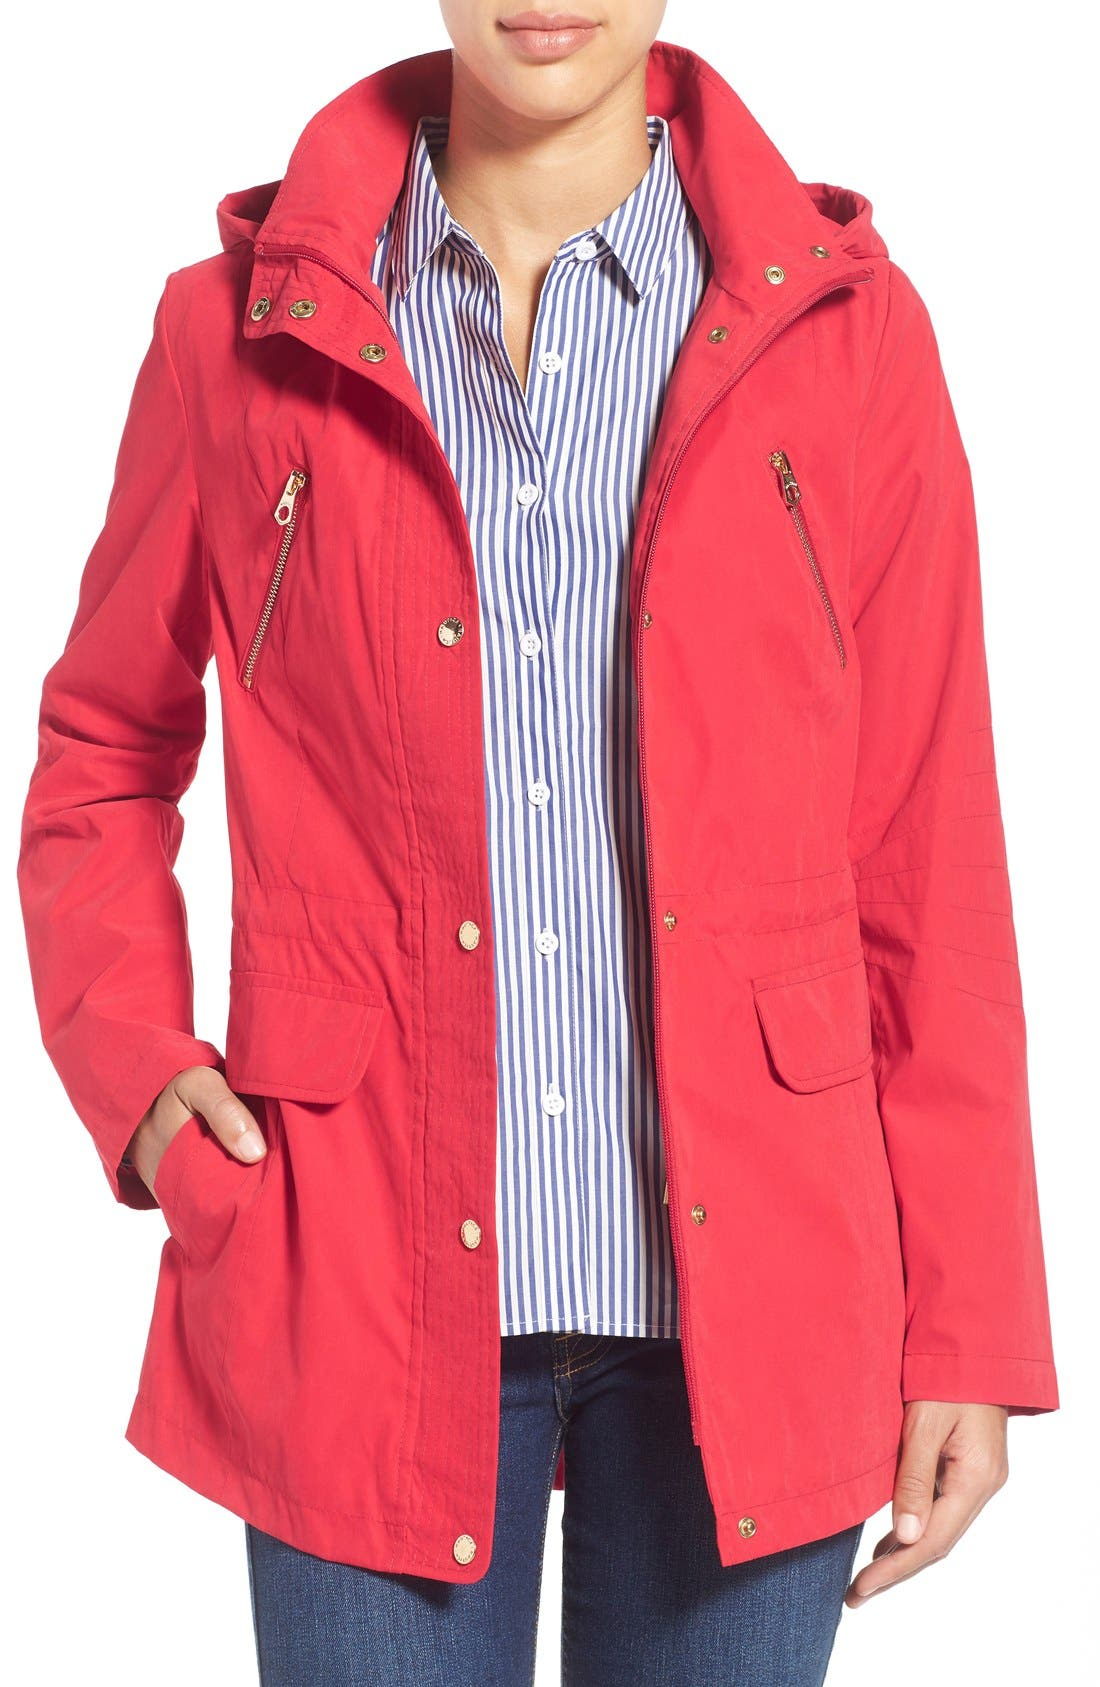 Alternate Image 1 Selected - Nautica Microfiber Drawstring Utility Anorak